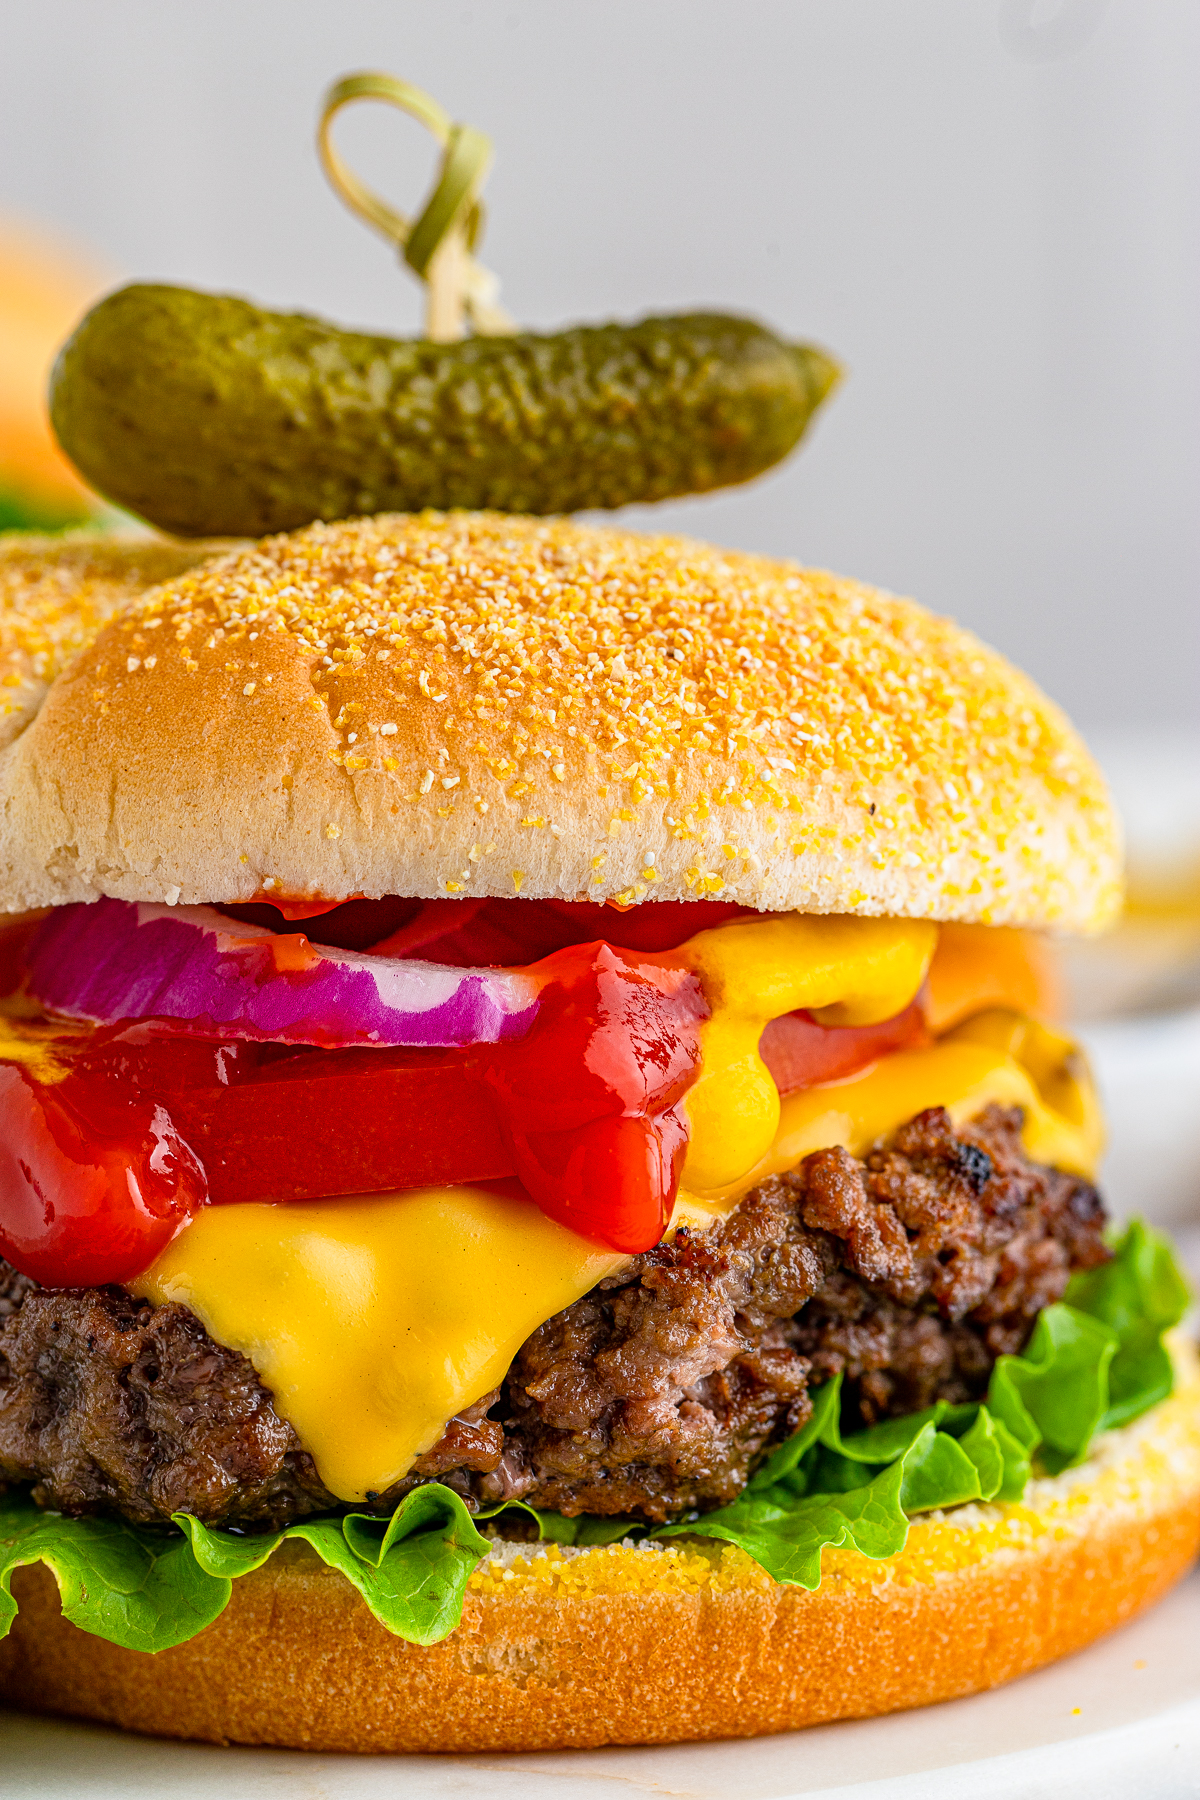 Close up side view of Cheseburger showing the burger and toppings